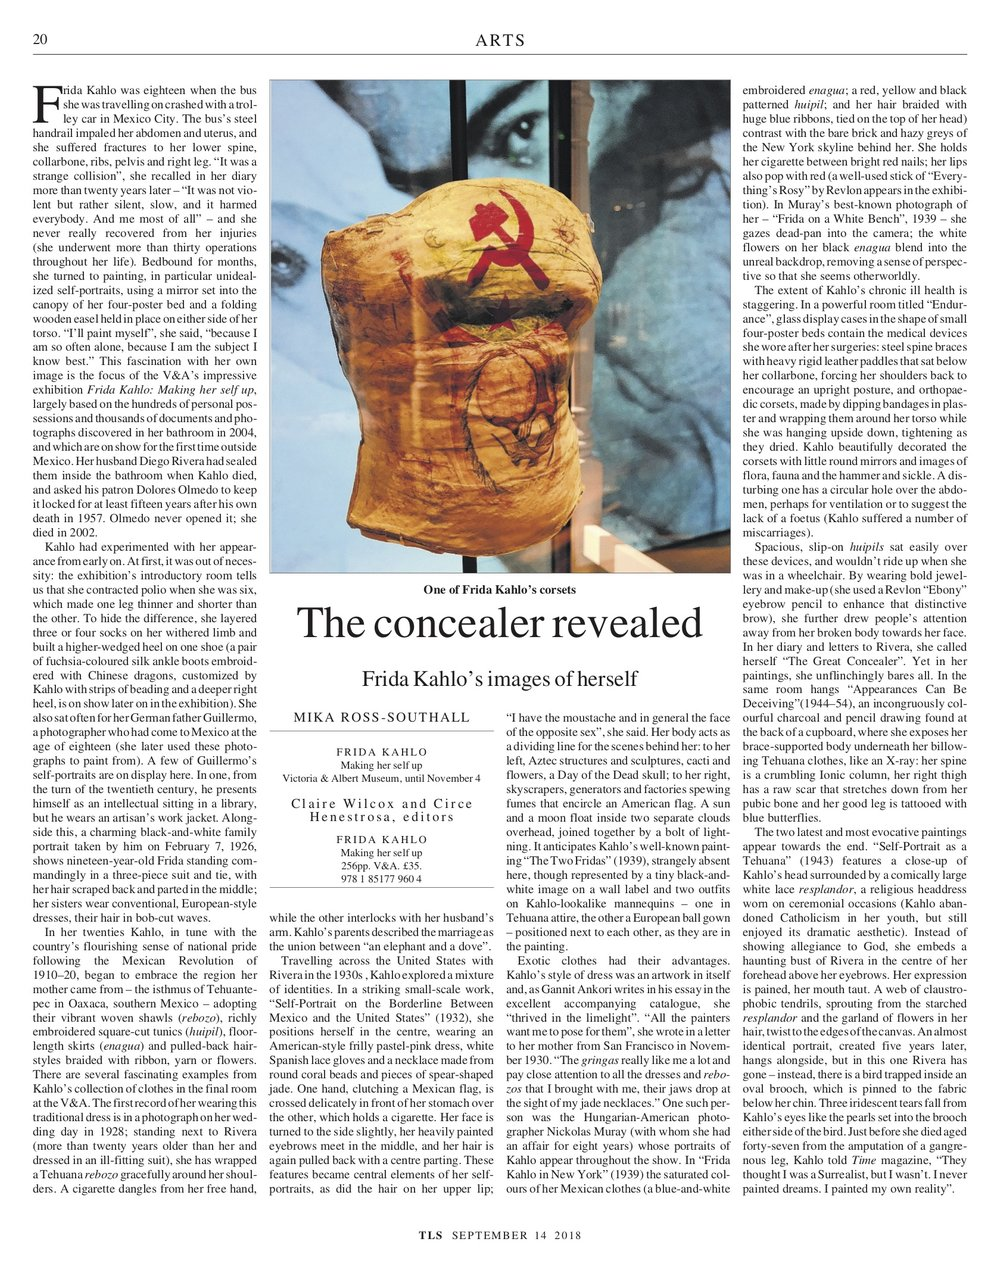 The concealer revealed, Published in The Times Literary Supplement (print & online), September 14, 2018